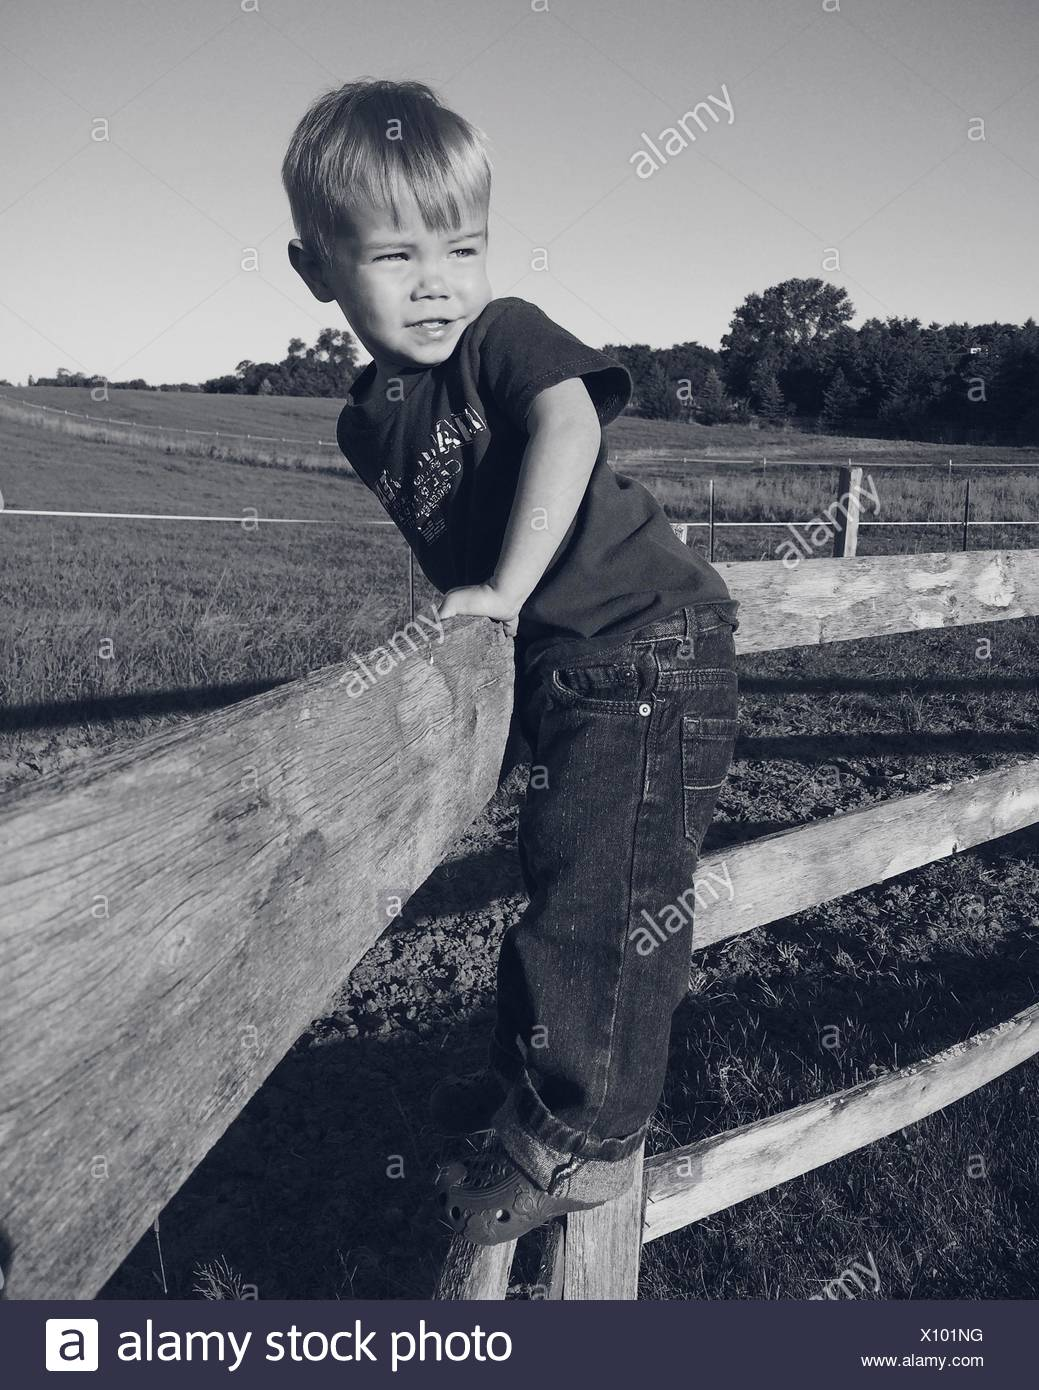 Boy Leaning Over Farm Fence Photo Stock